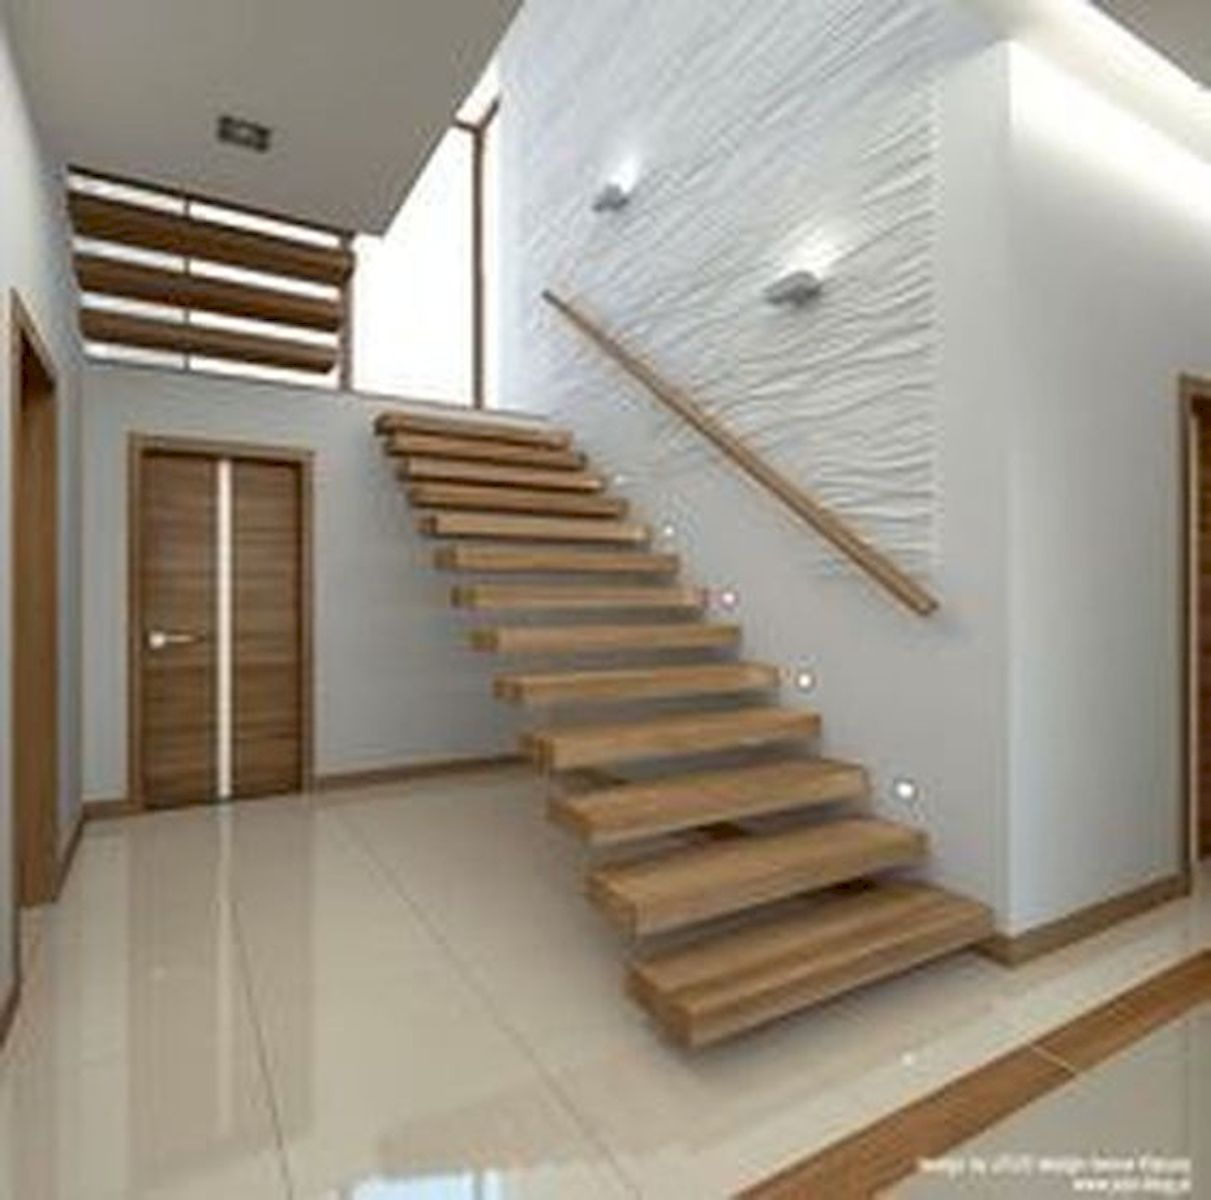 30 Awesome Wooden Stairs Design Ideas For Your Home (com